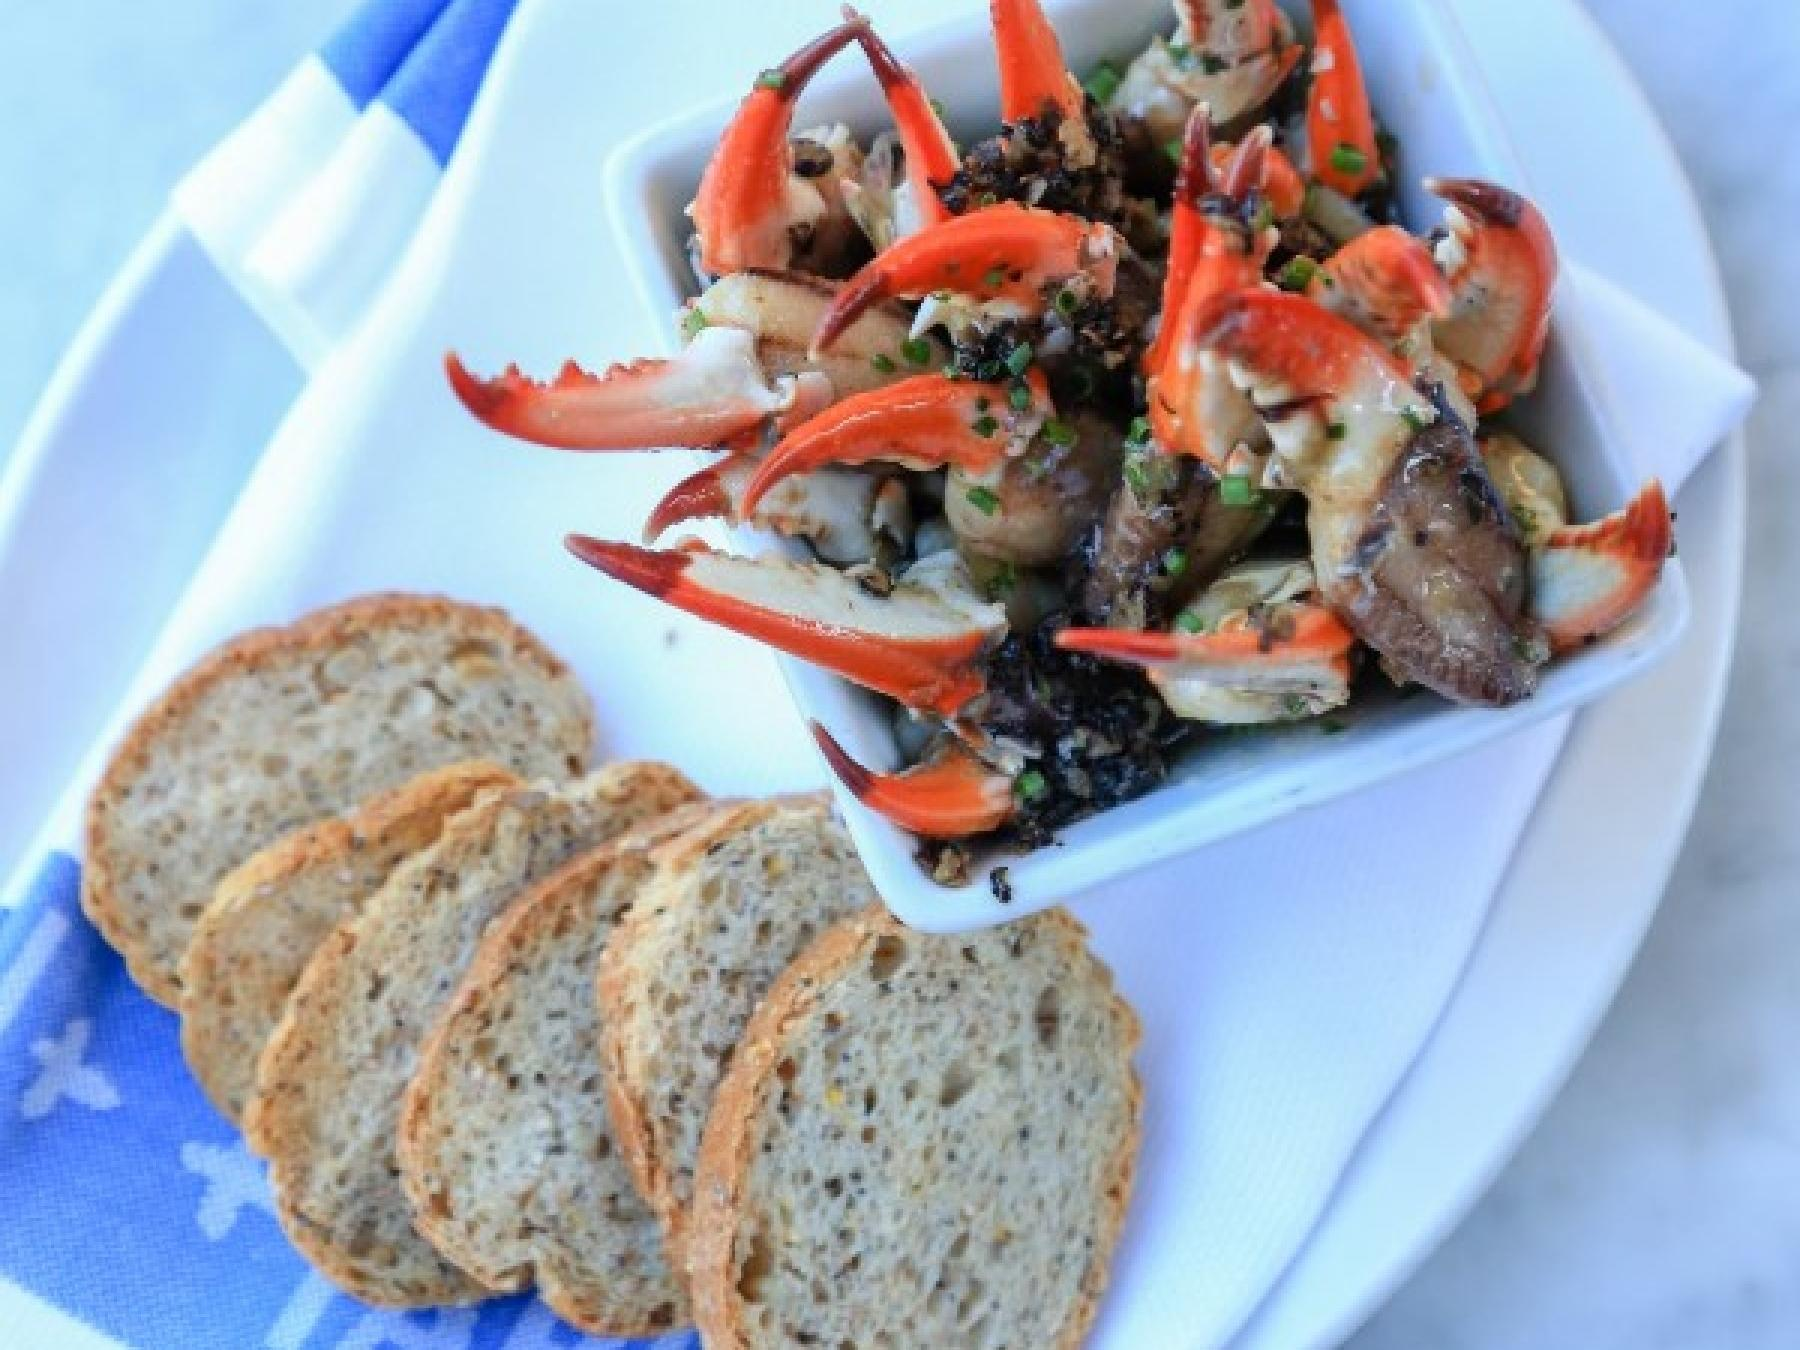 Crabs and bread served at Tableau near Andrew Jackson Hotel